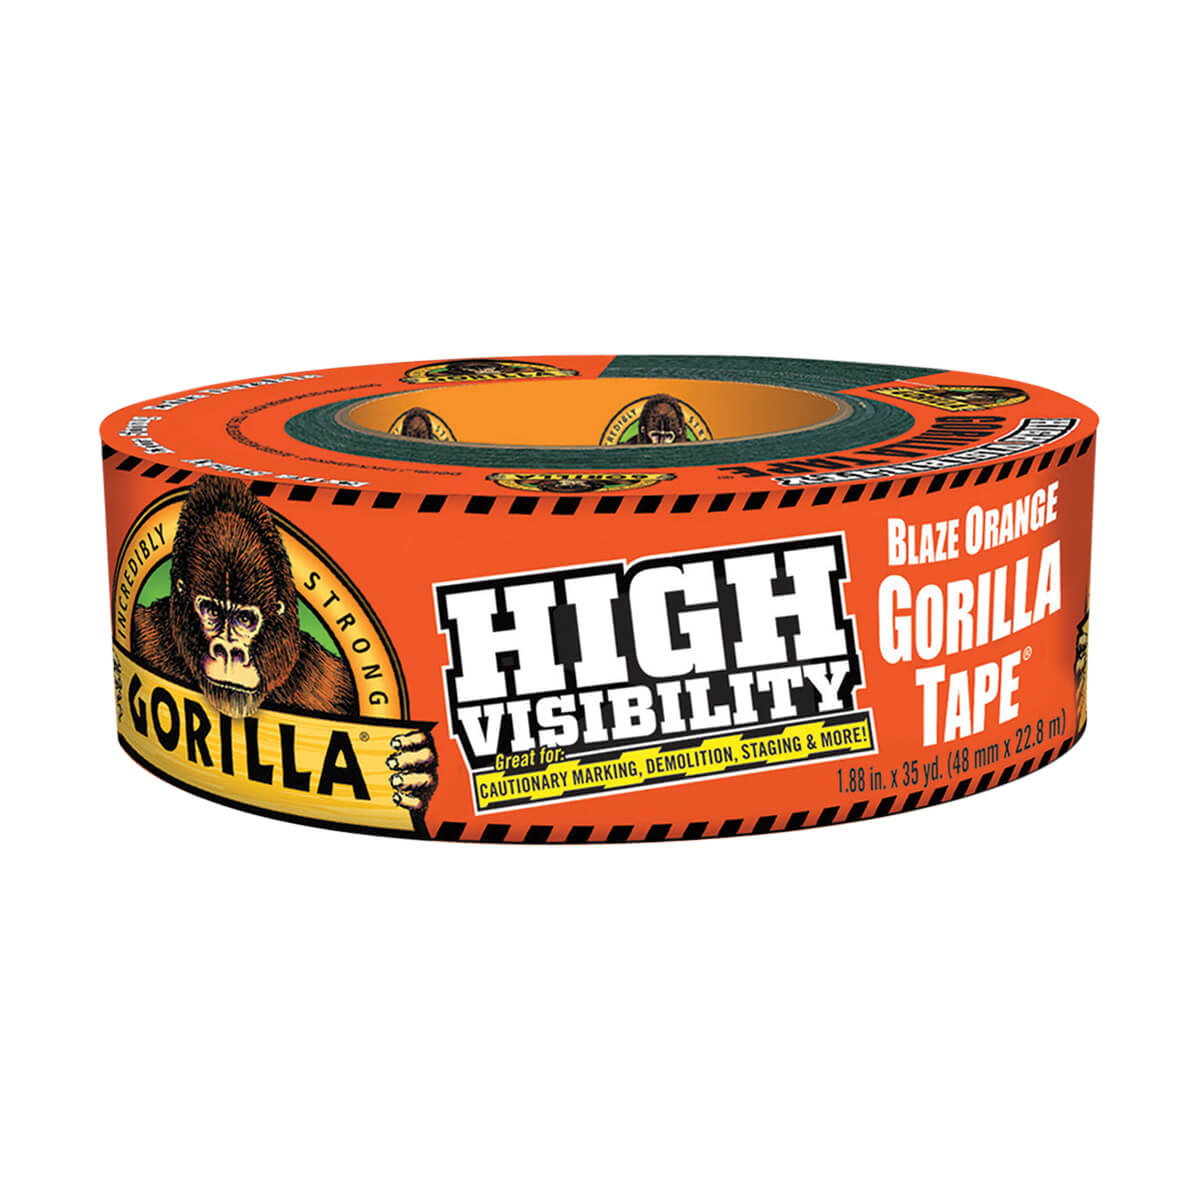 High Visibility Gorilla Duct Tape